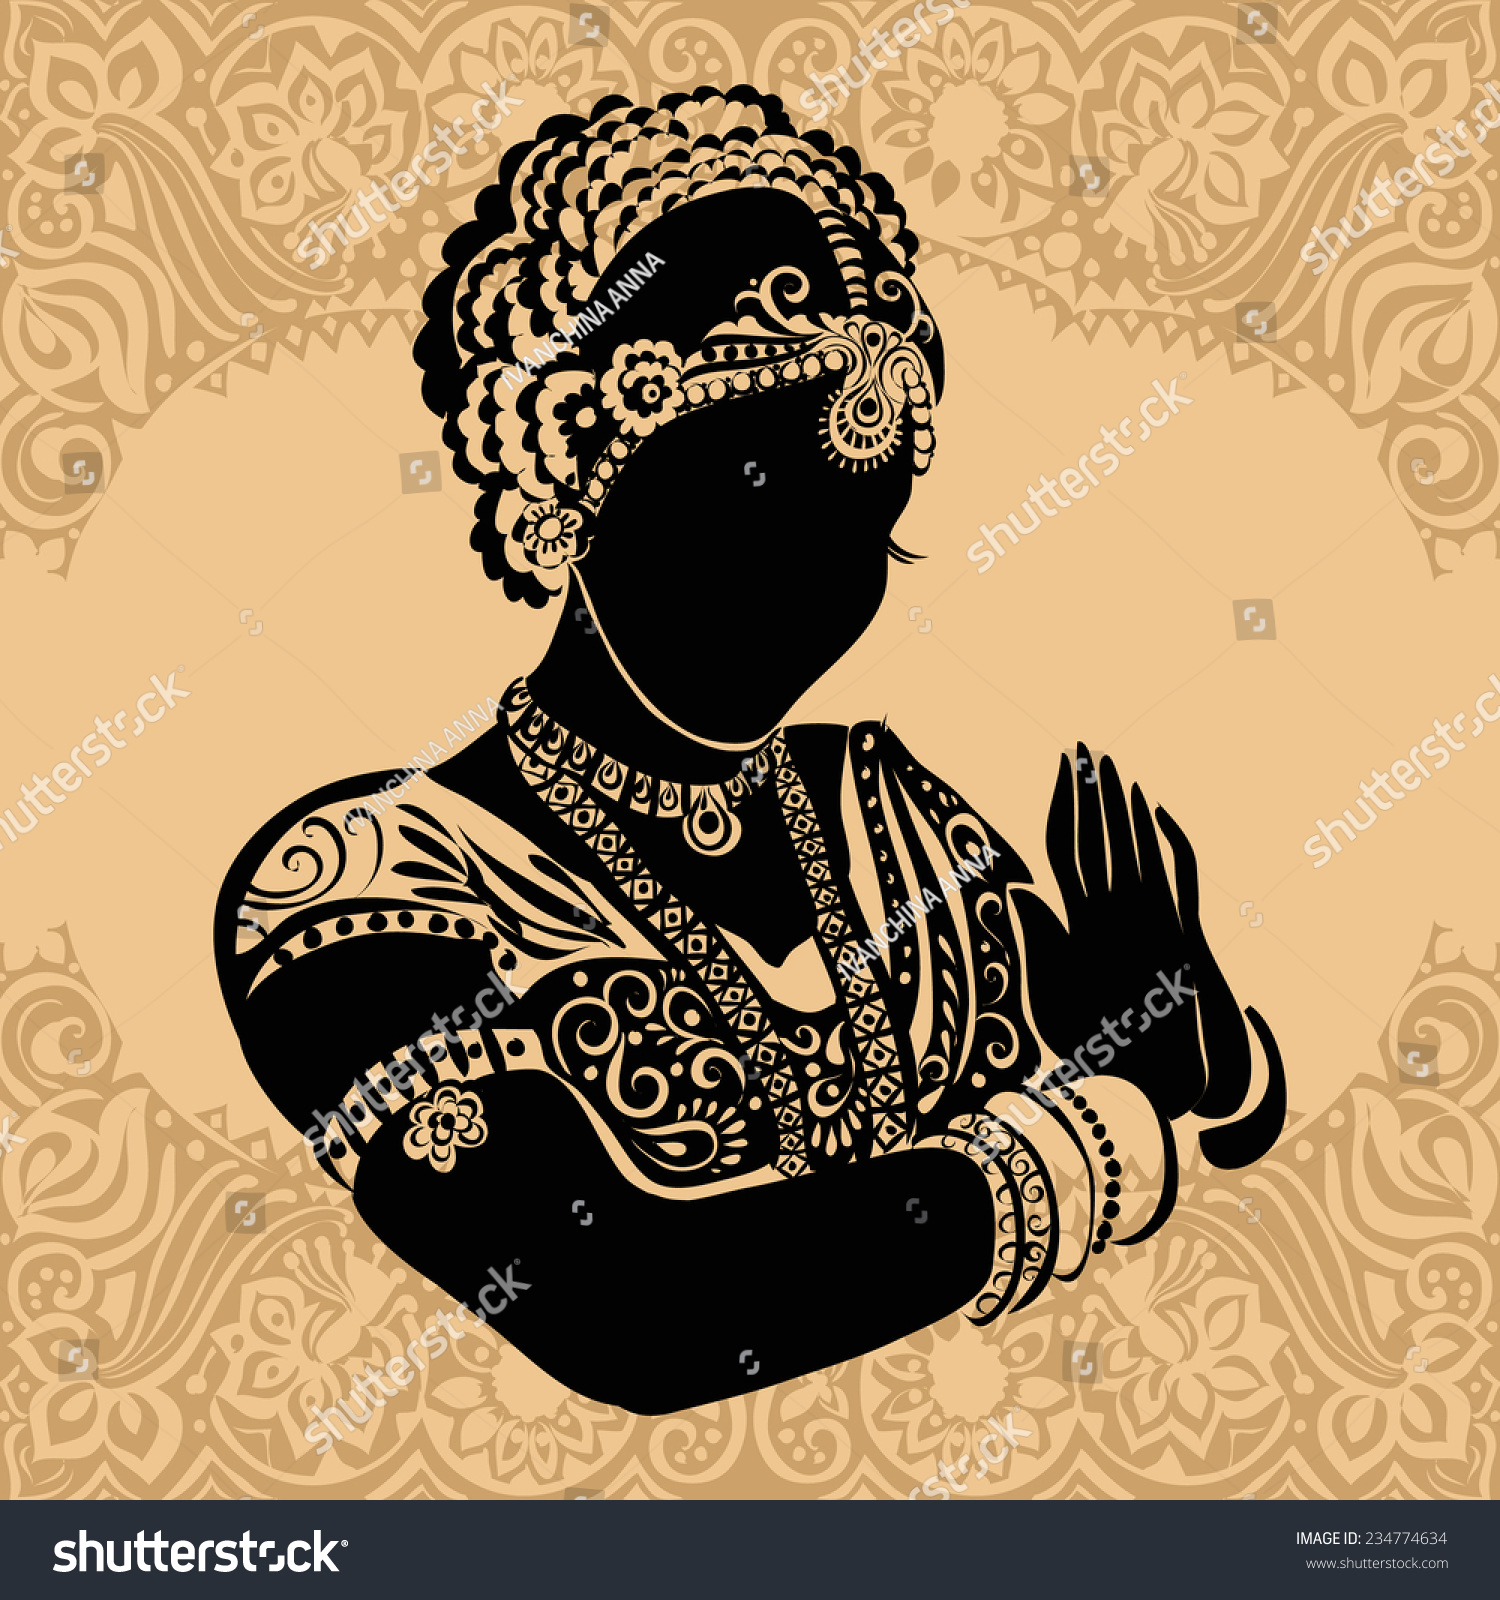 Indian Woman Silhouette Woman Stock Vector Royalty Free 234774634